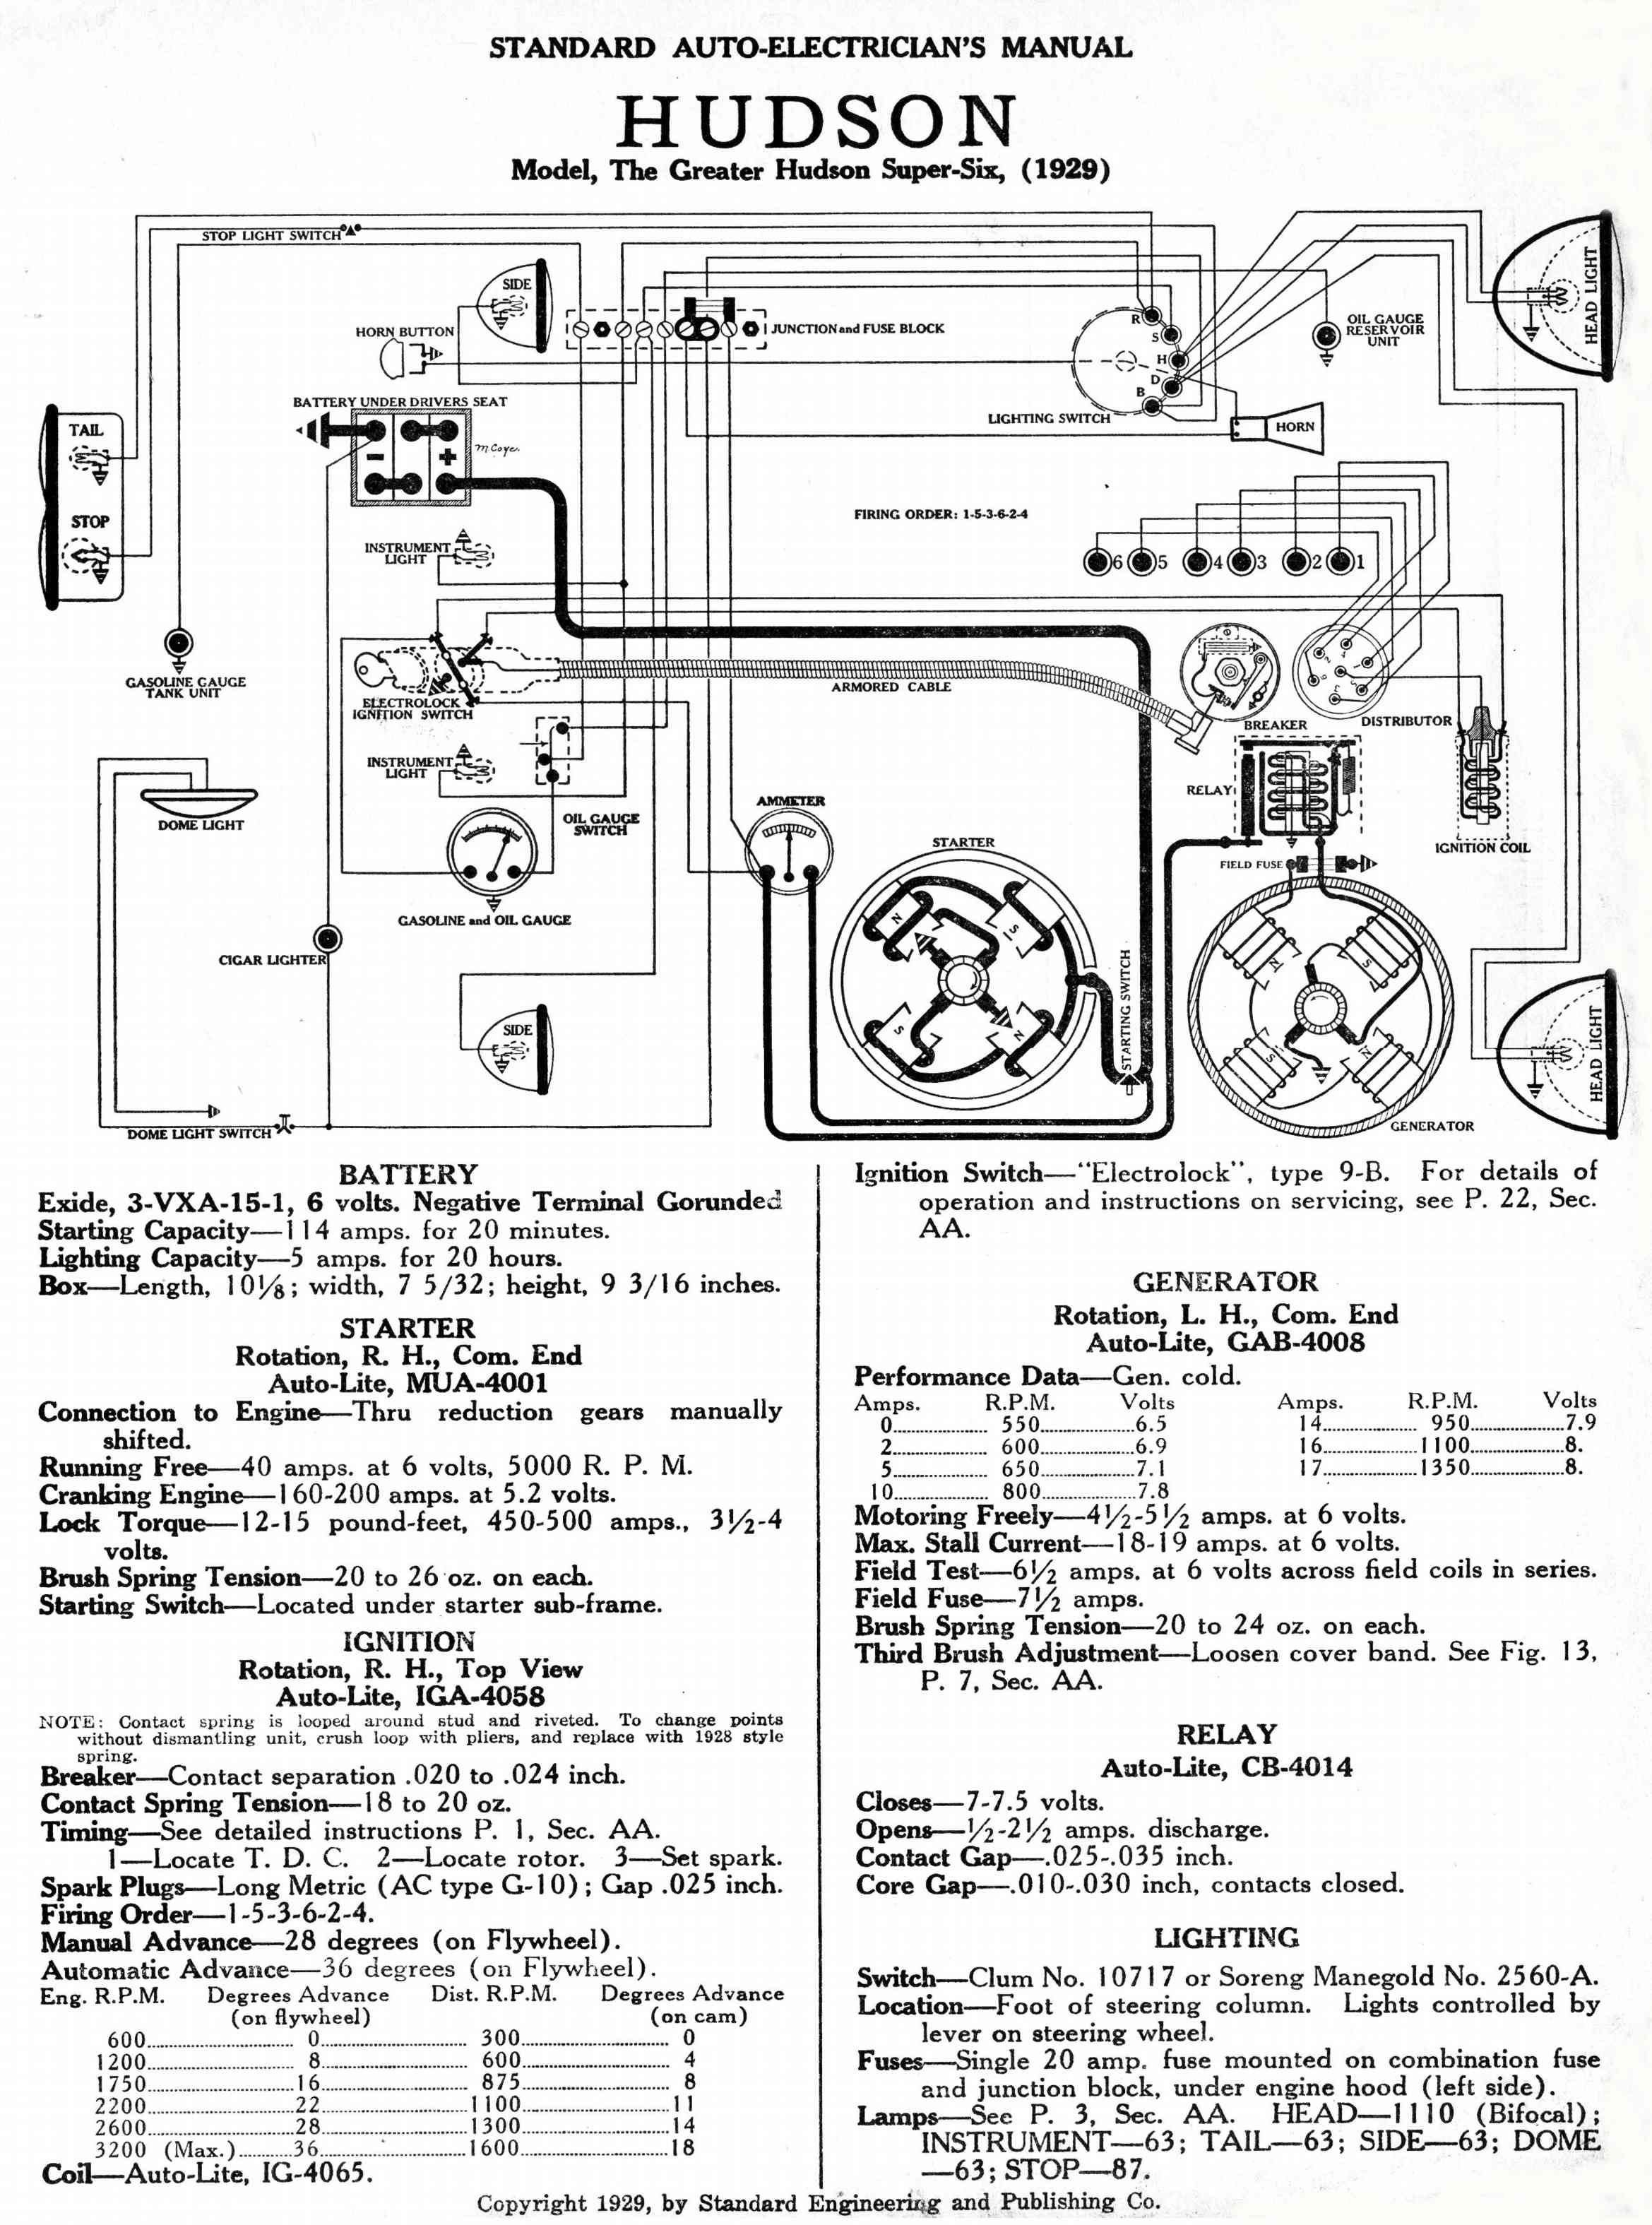 1949 Desoto Cop Car Wiring Diagramcop 1941 Dodge Diagram Hudson Manuals Tech Index 29 Elec At